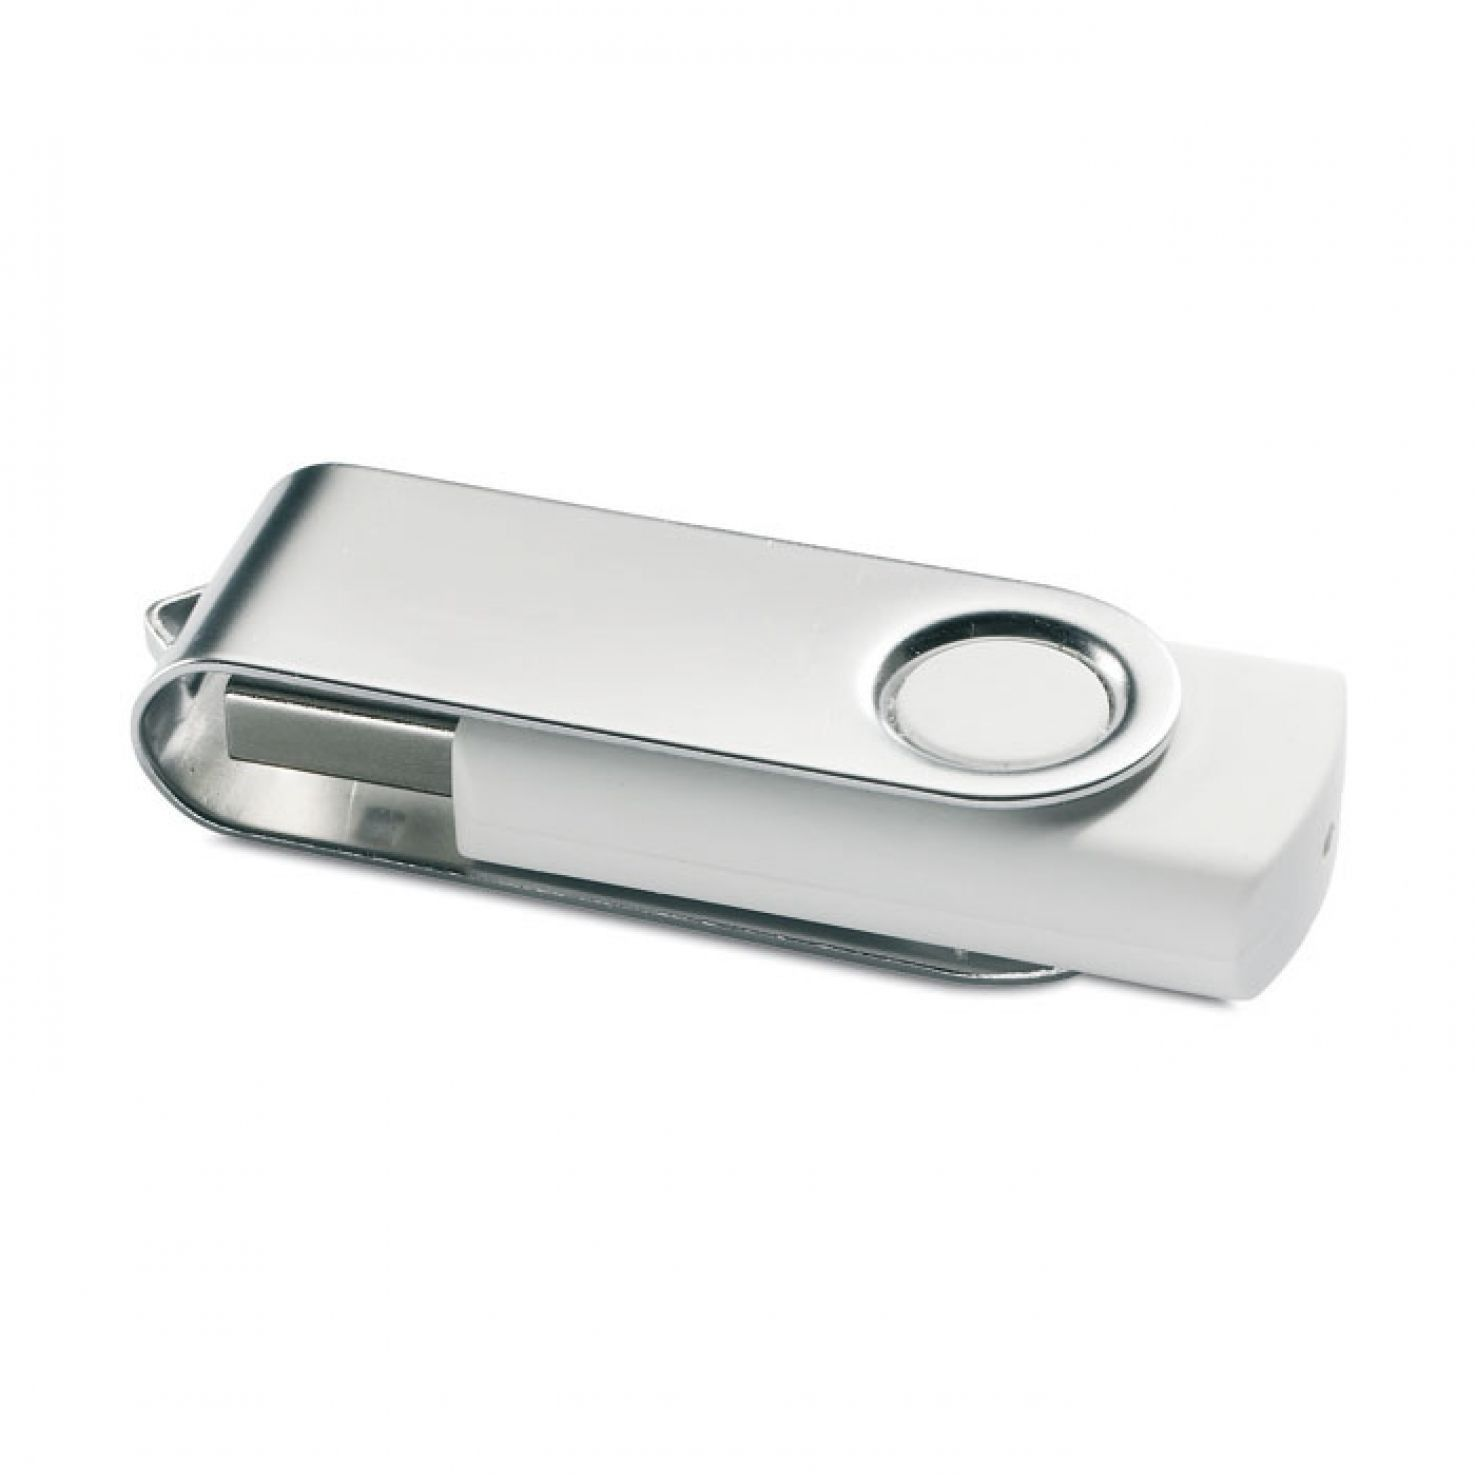 Witte USB stick twister 3.0 8GB